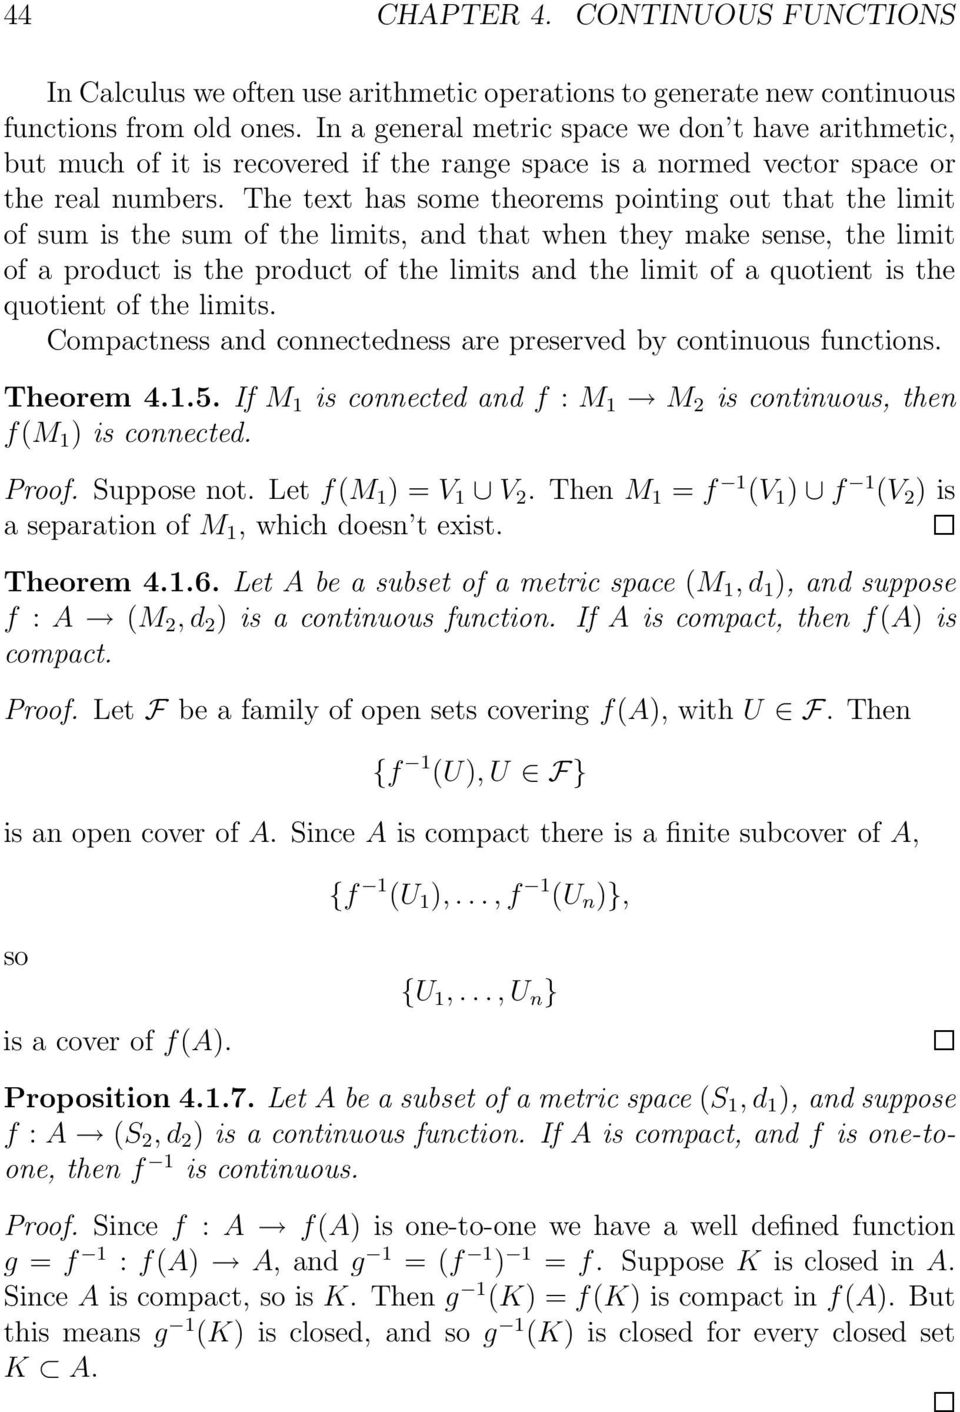 The text has some theorems pointing out that the limit of sum is the sum of the limits, and that when they make sense, the limit of a product is the product of the limits and the limit of a quotient